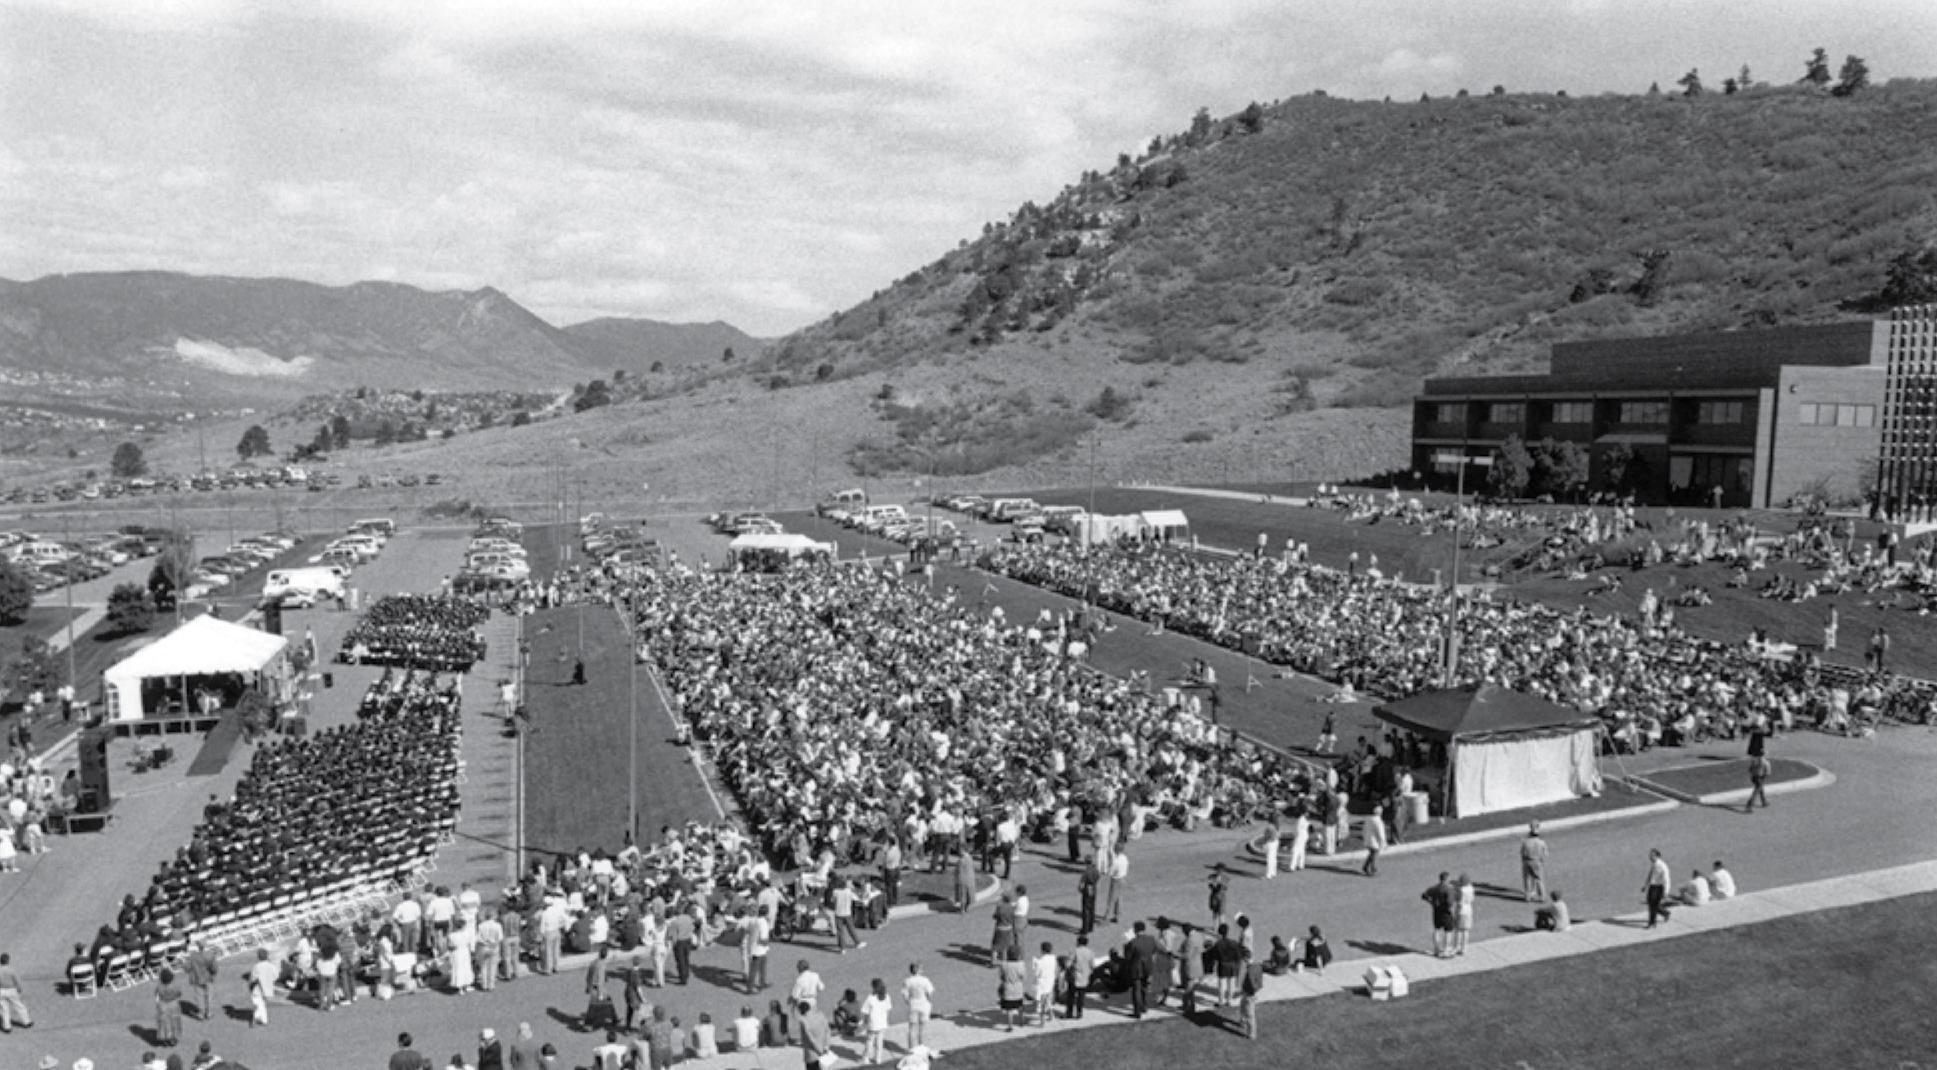 An outdoor commencement ceremony at UCCS in 1995